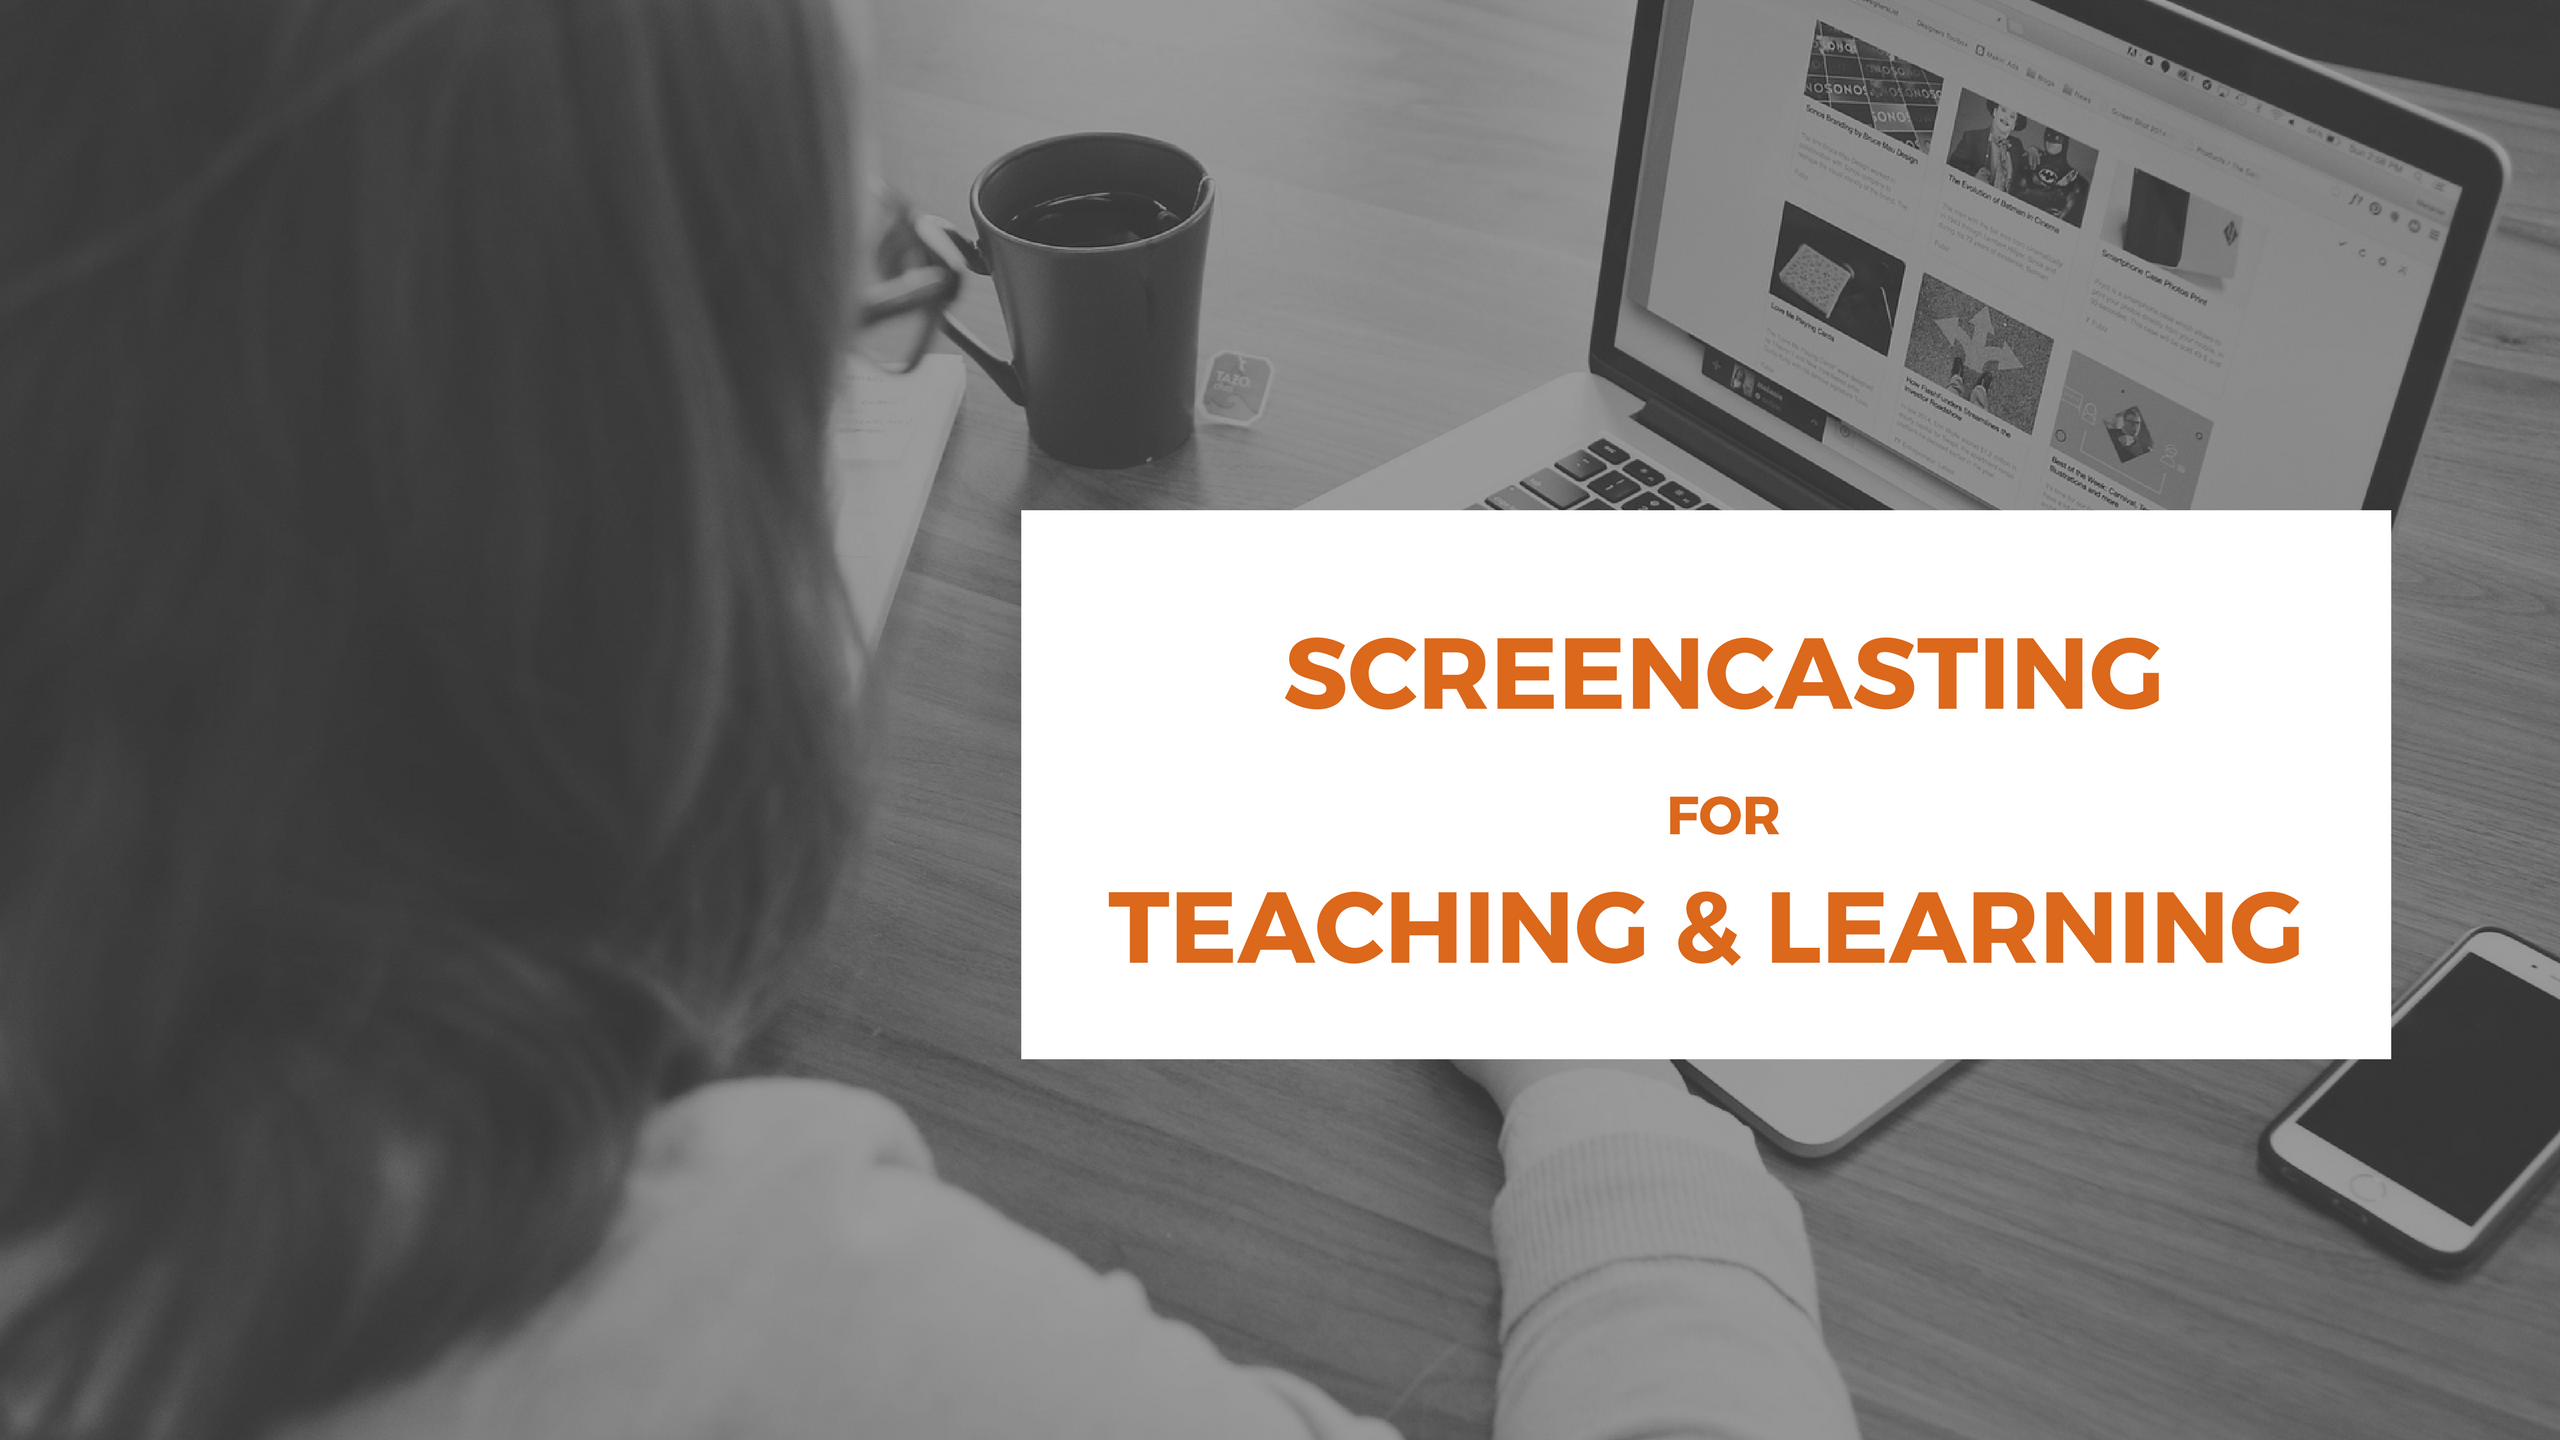 Benefits of screencasting for teaching and learning